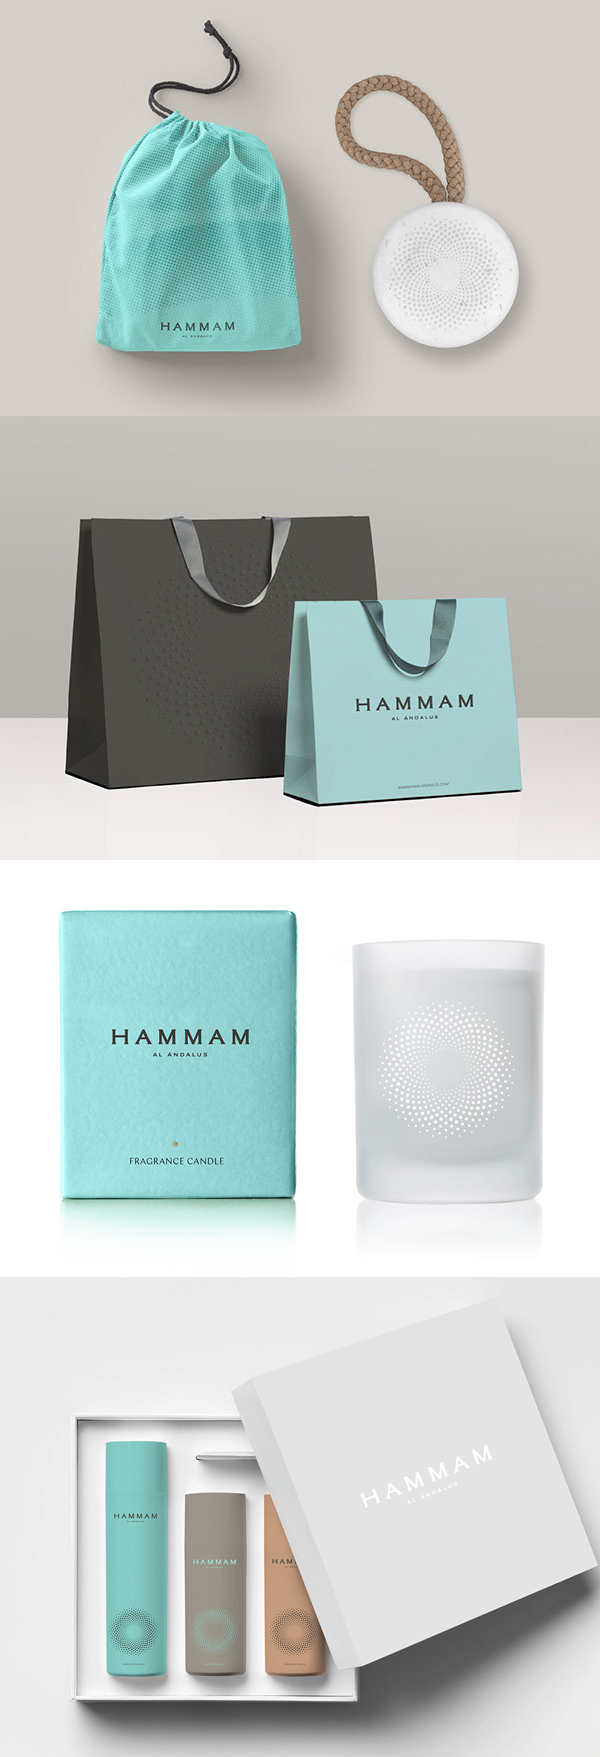 Branding: HAMMAM AL ÁNDALUS - Packaging Design